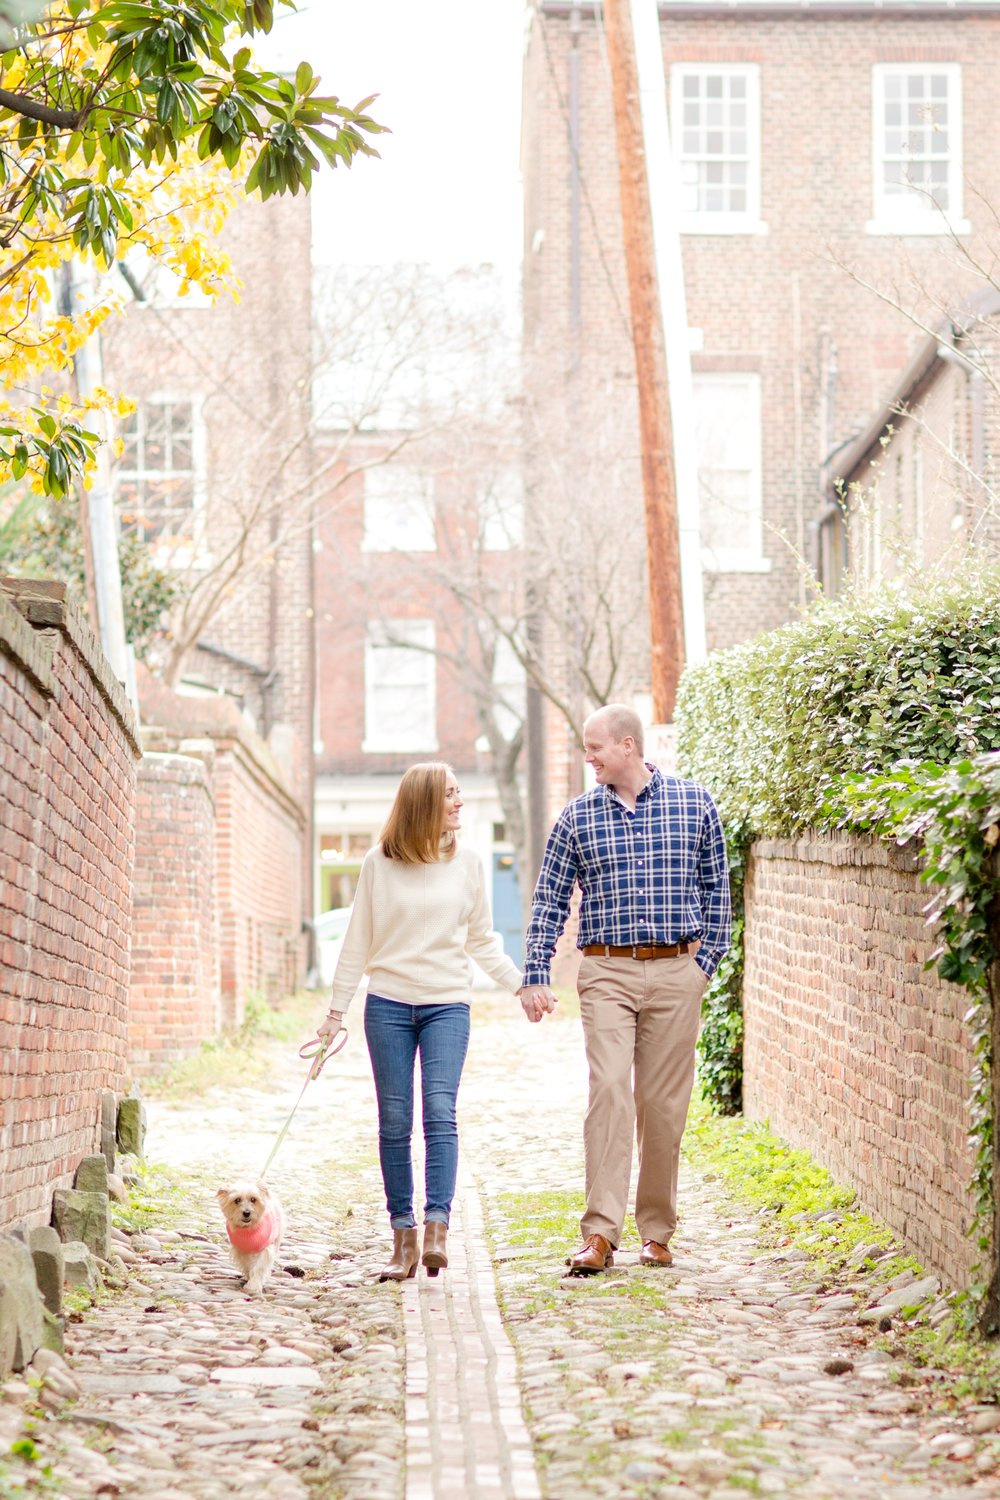 Kristin & Matt Engagement-19_anna grace photography old town alexandria virginia engagement and wedding photographer photo.jpg